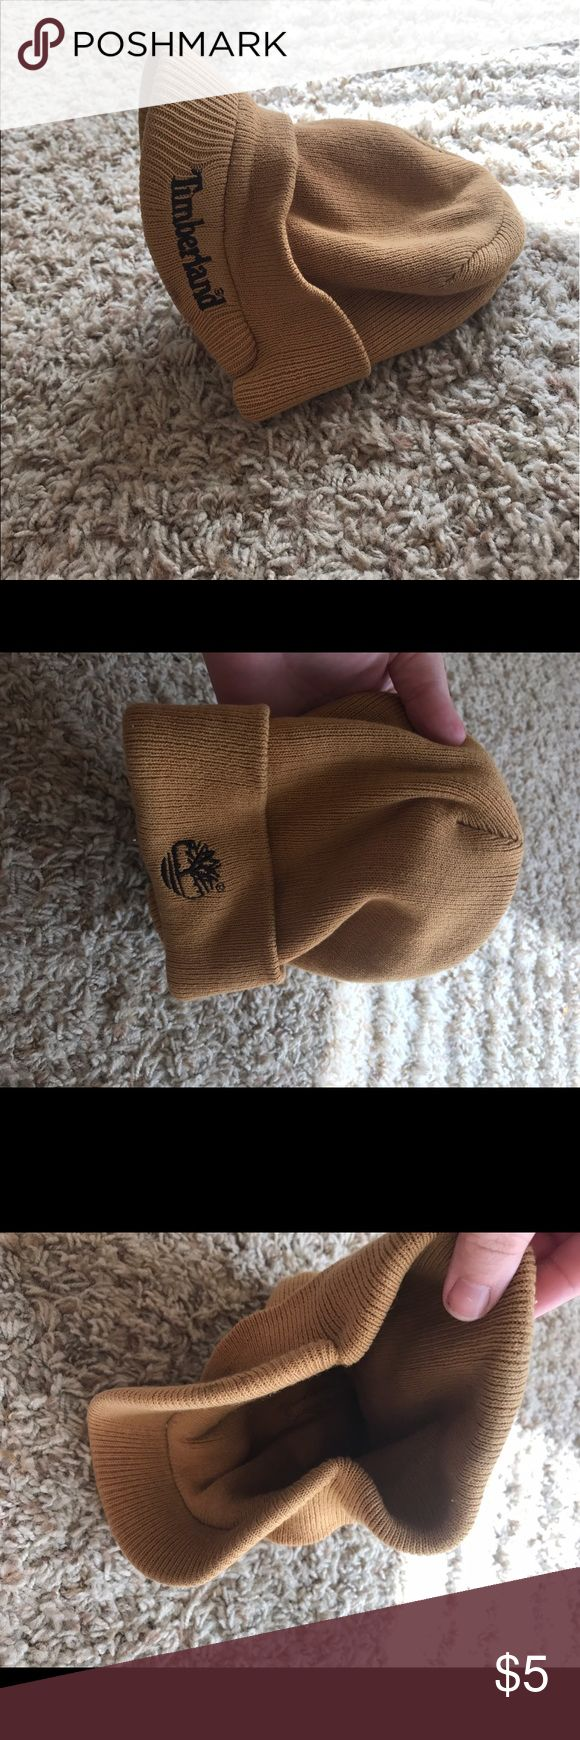 Timberland hat Excellent condition! No damage All 5 dollar items are only available till Sunday evening so stock up. All offers will be declined, sorry girls and boys. ☺️ Timberland Accessories